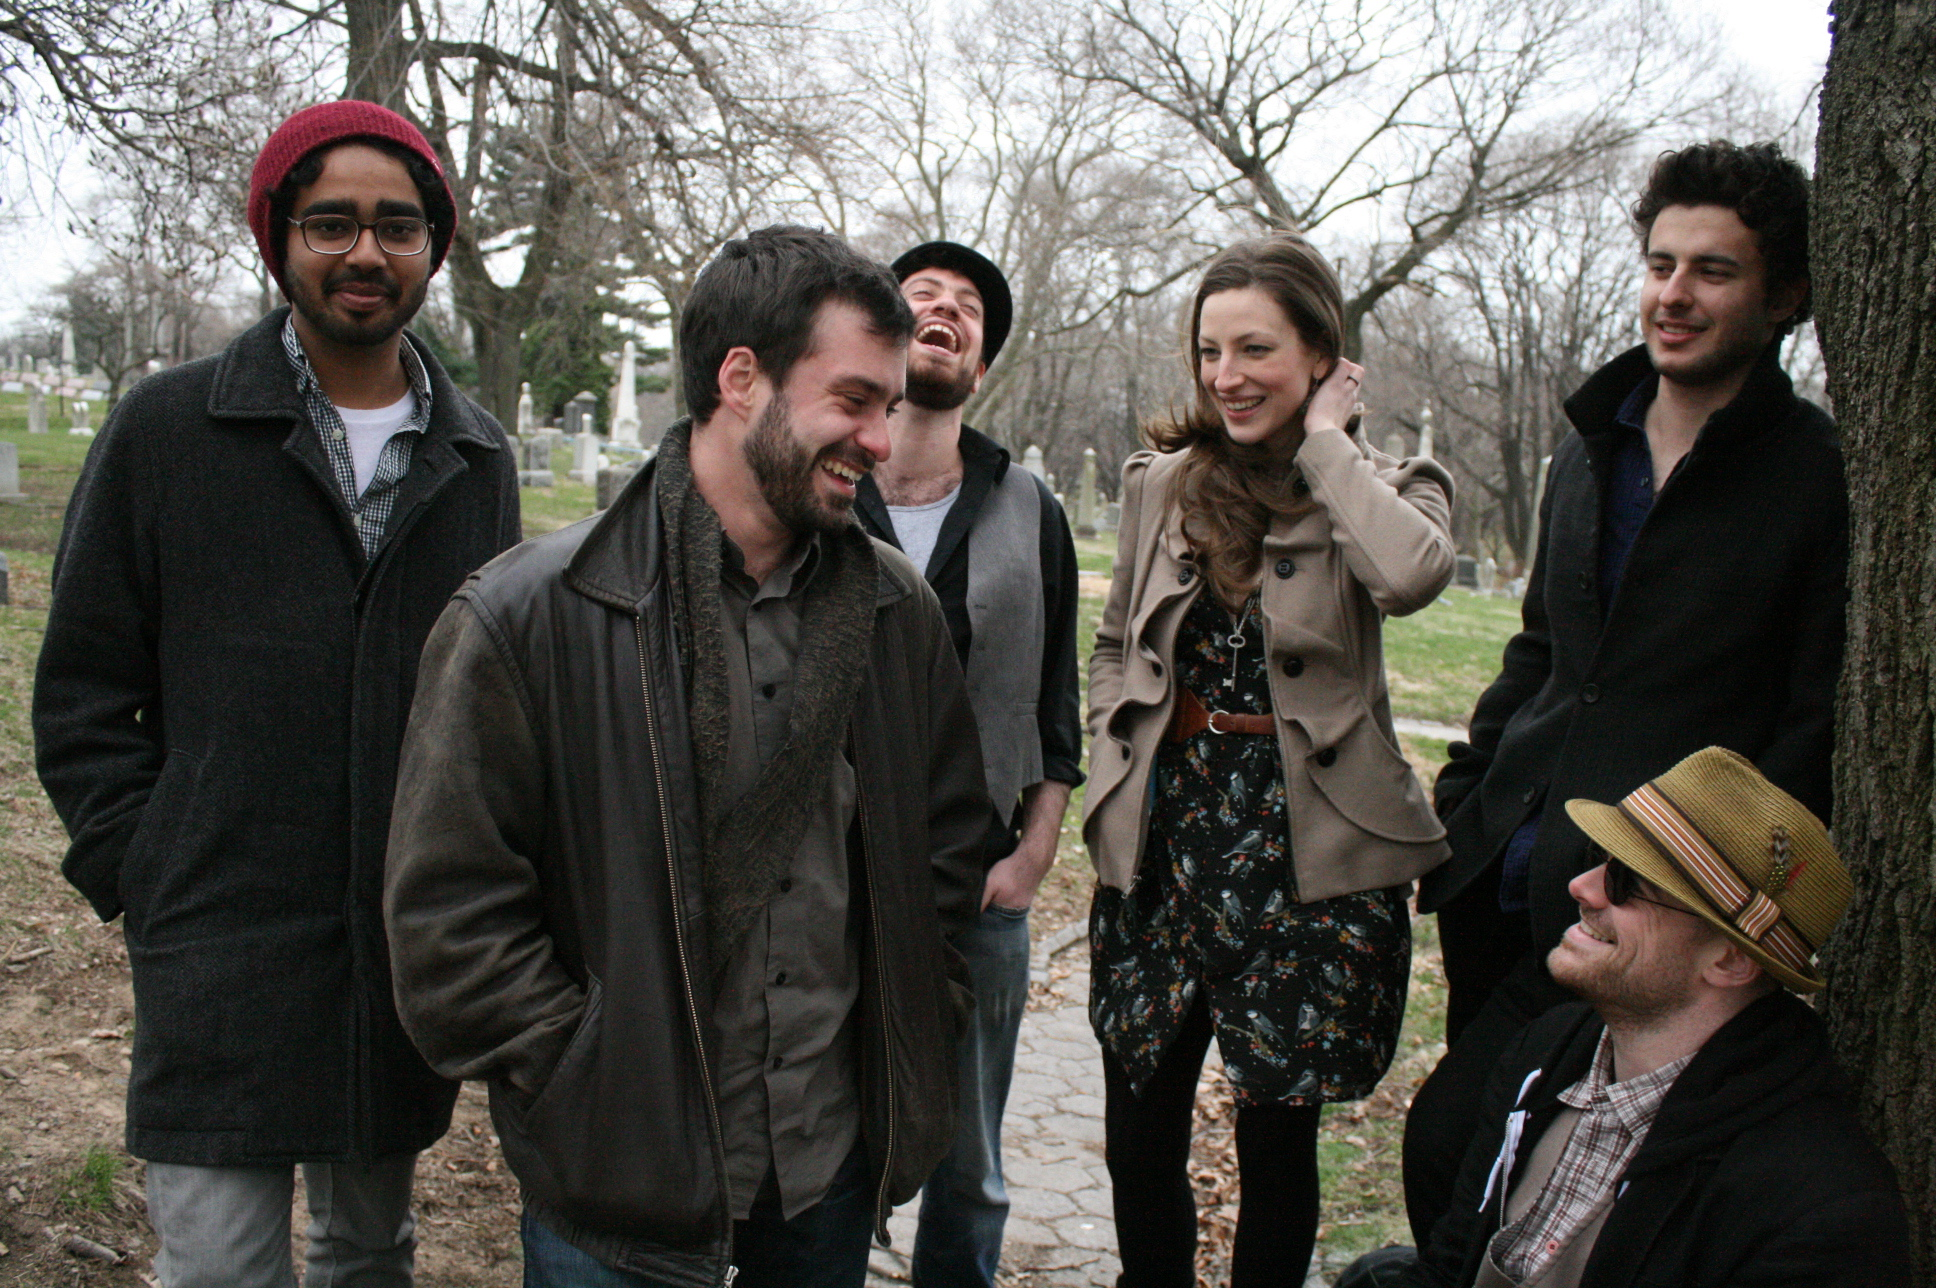 FOLK ROCK BAND HAWTHORNE TO PERFORM AT BARTOW-PELL MANSION MUSEUM FIRST FRIDAY! IN SEPTEMBER